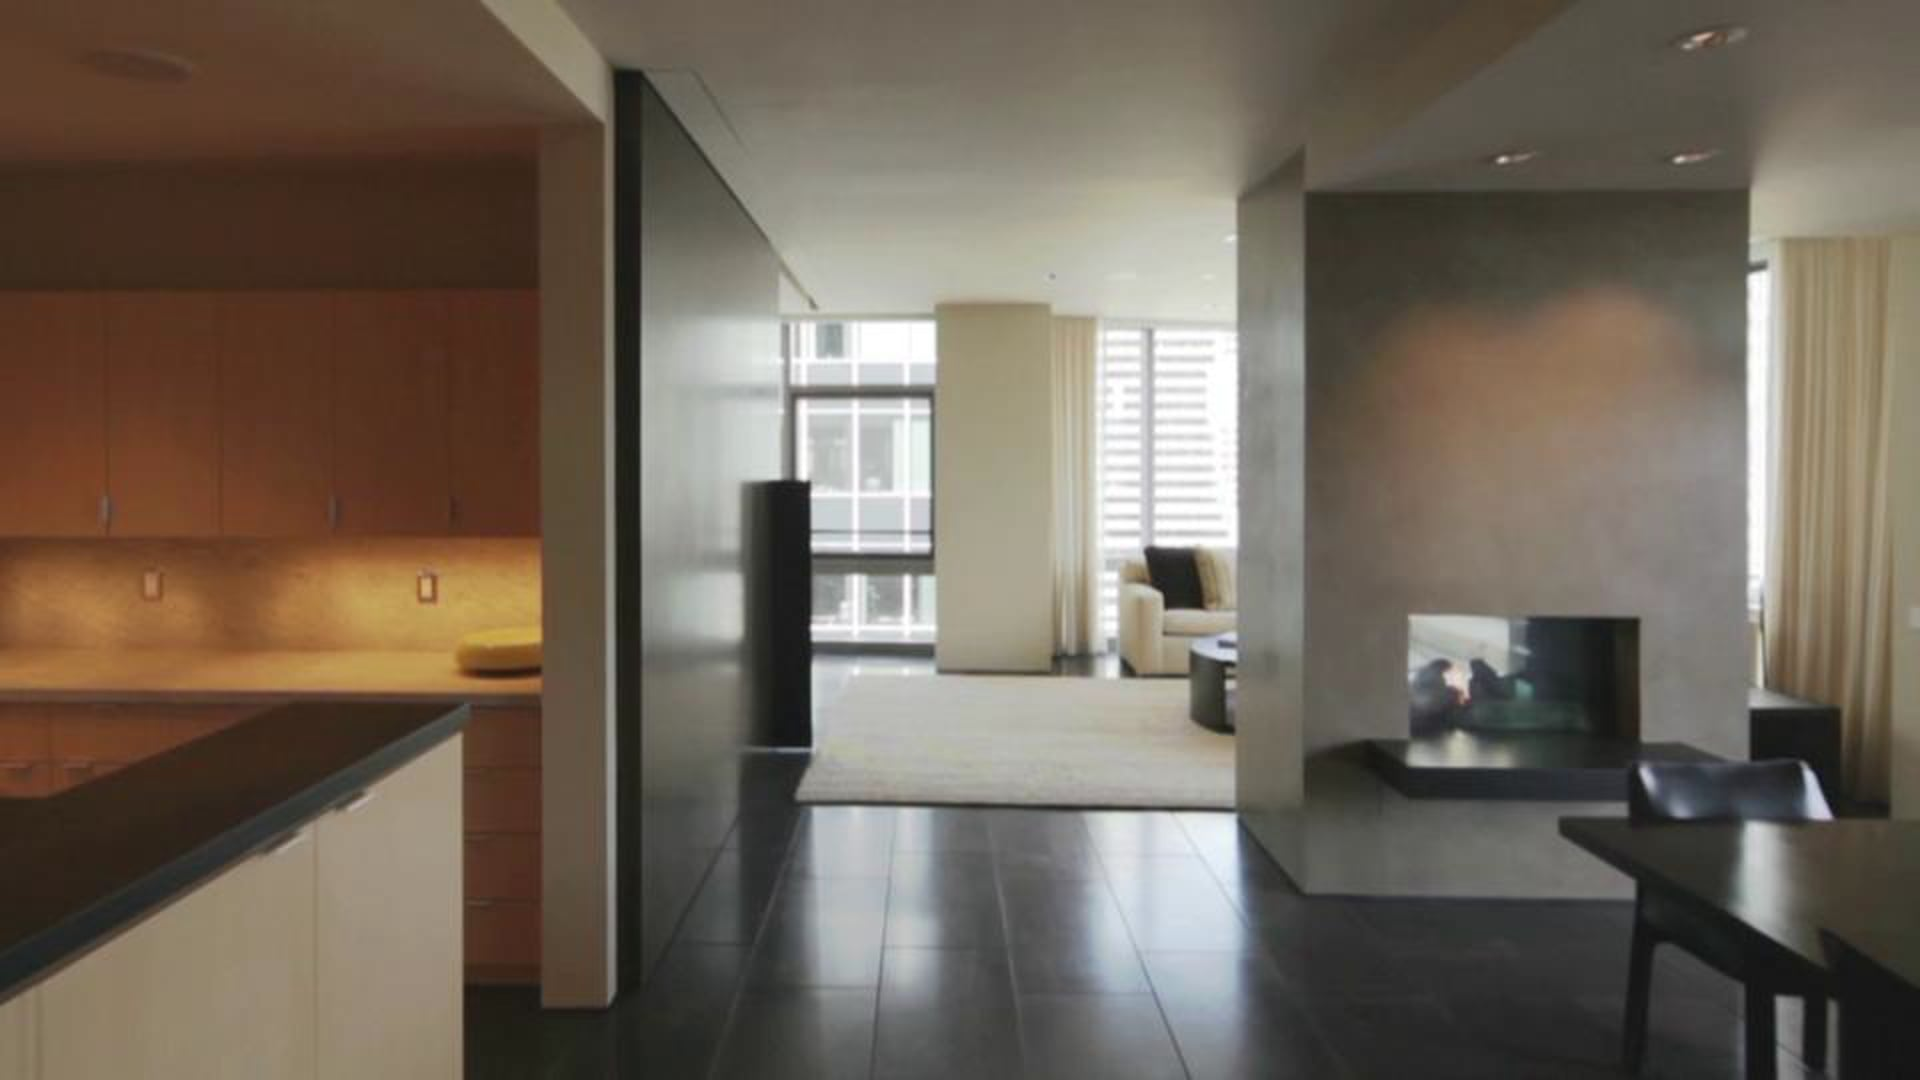 Millennium Tower 1703 - Downtown Seattle Luxury Condo offered at $1,650,000